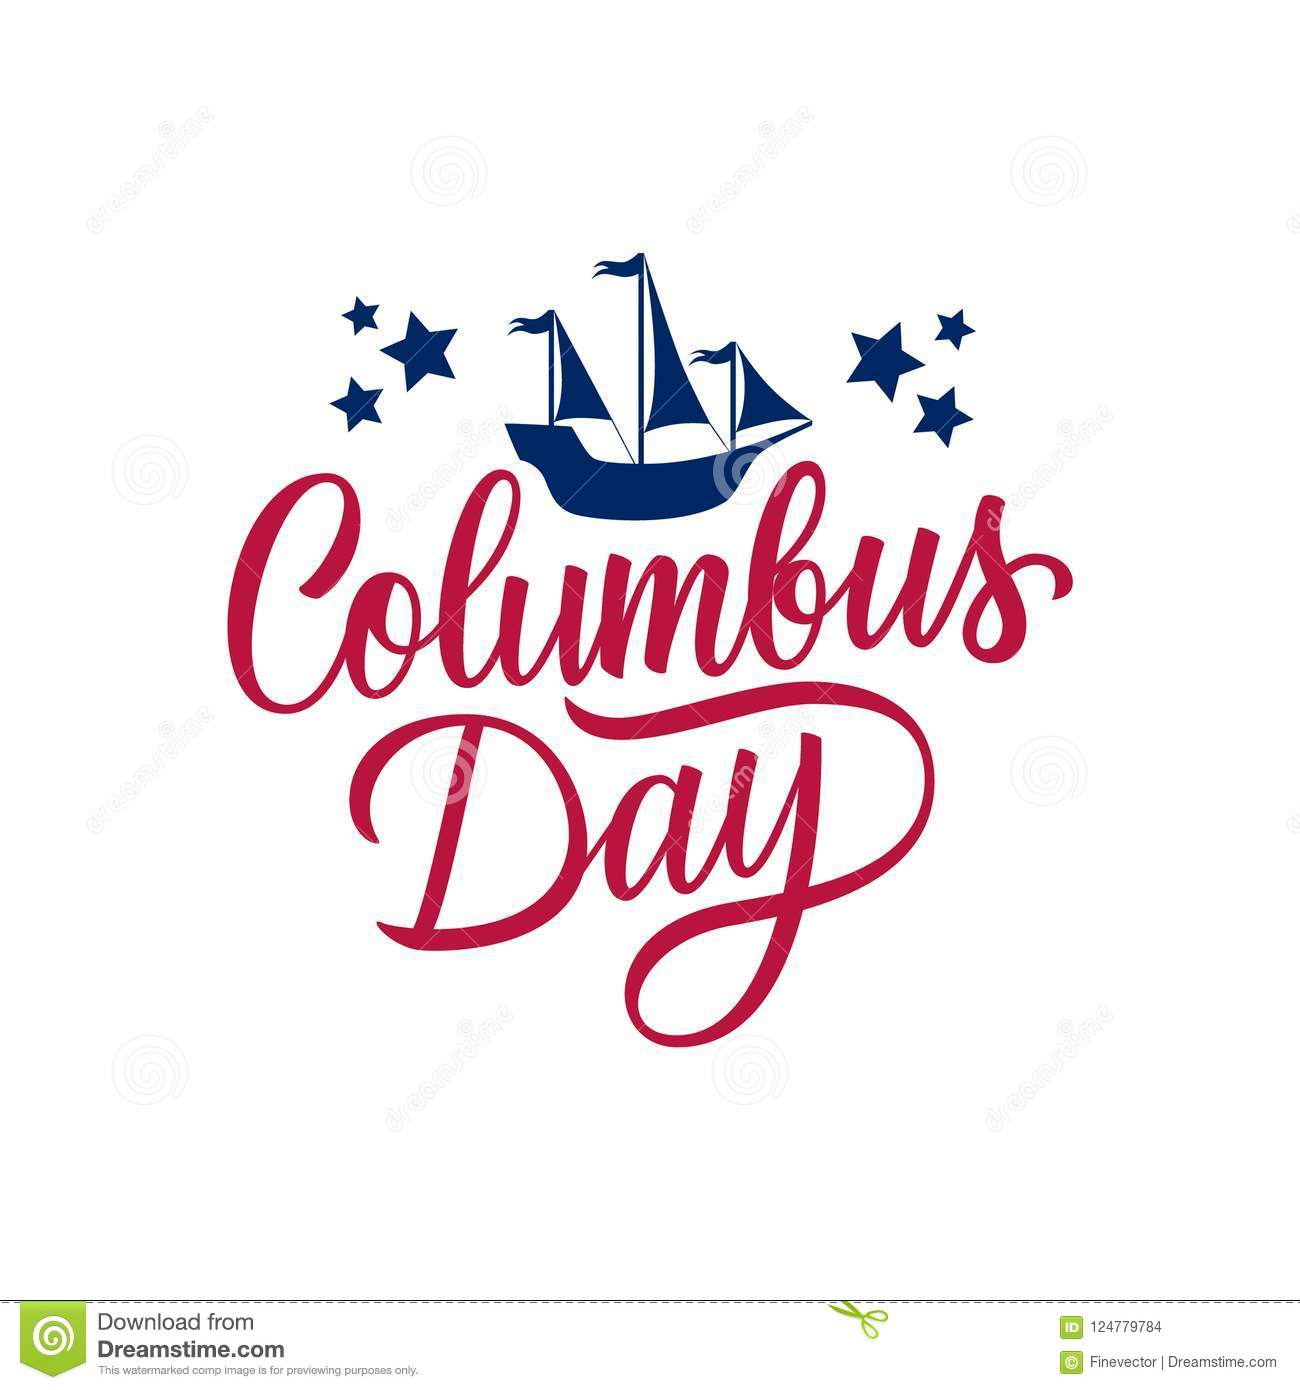 Greetings day Columbus pictures recommend dress in winter in 2019